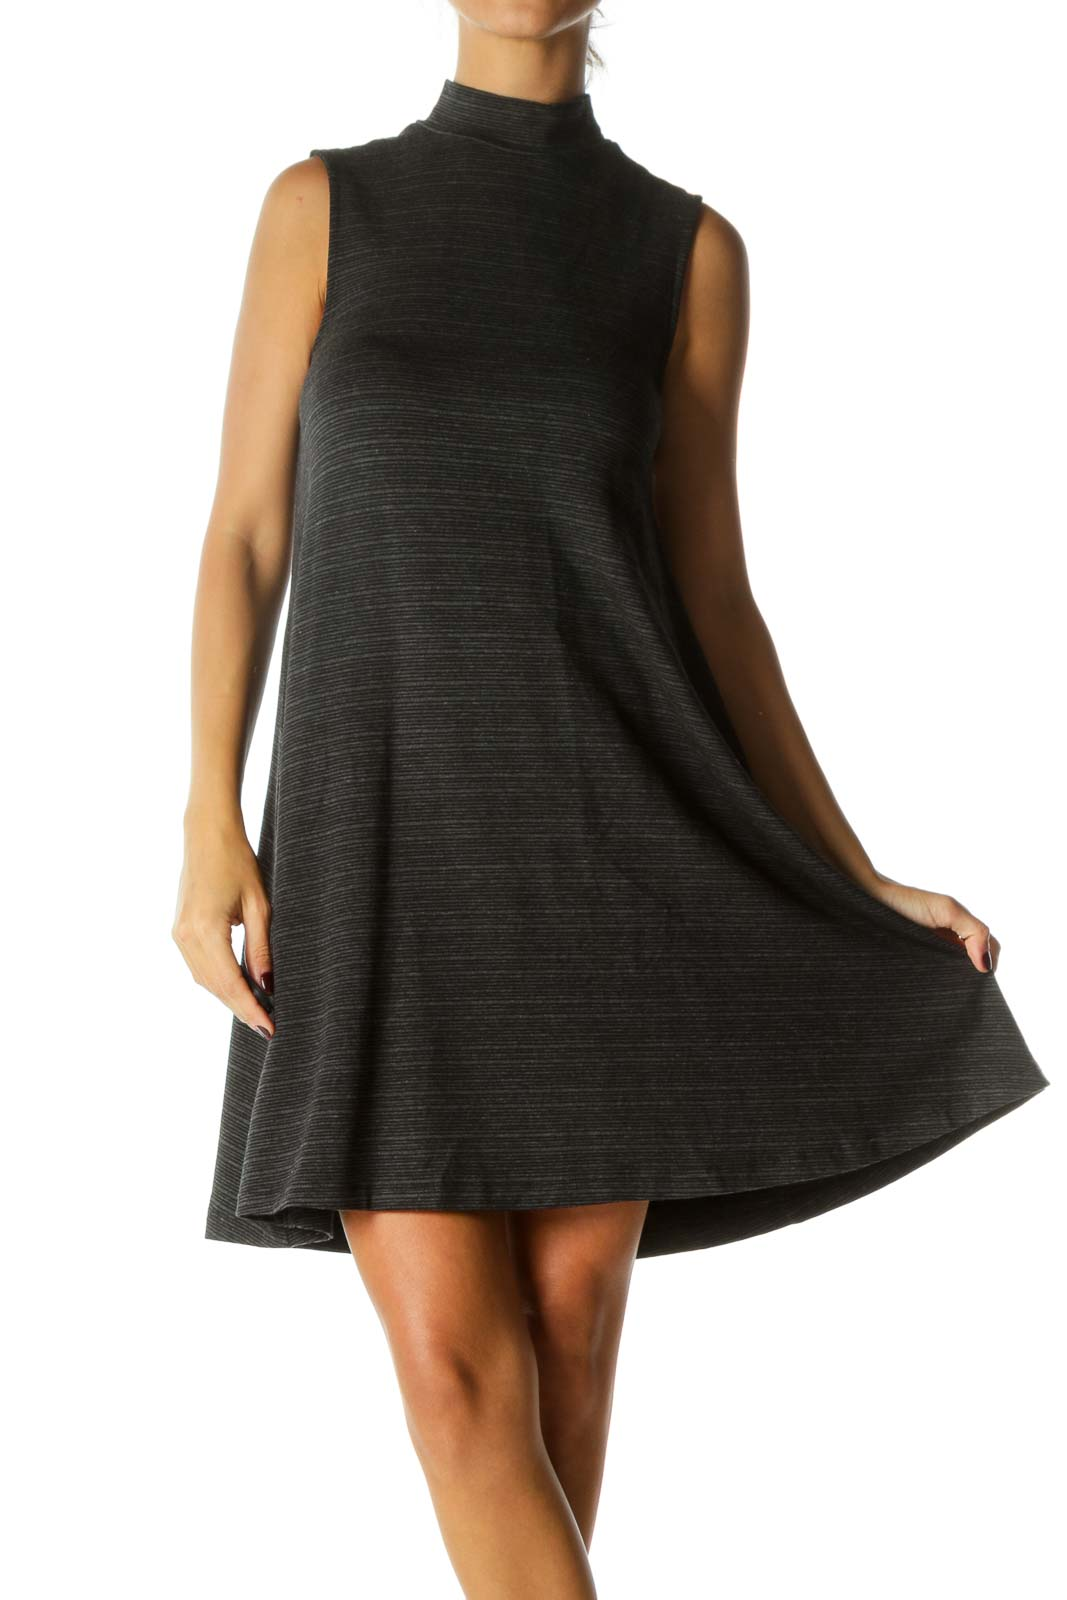 Black Gray Striped High Neck Sleeveless Flared Stretch Dress Front